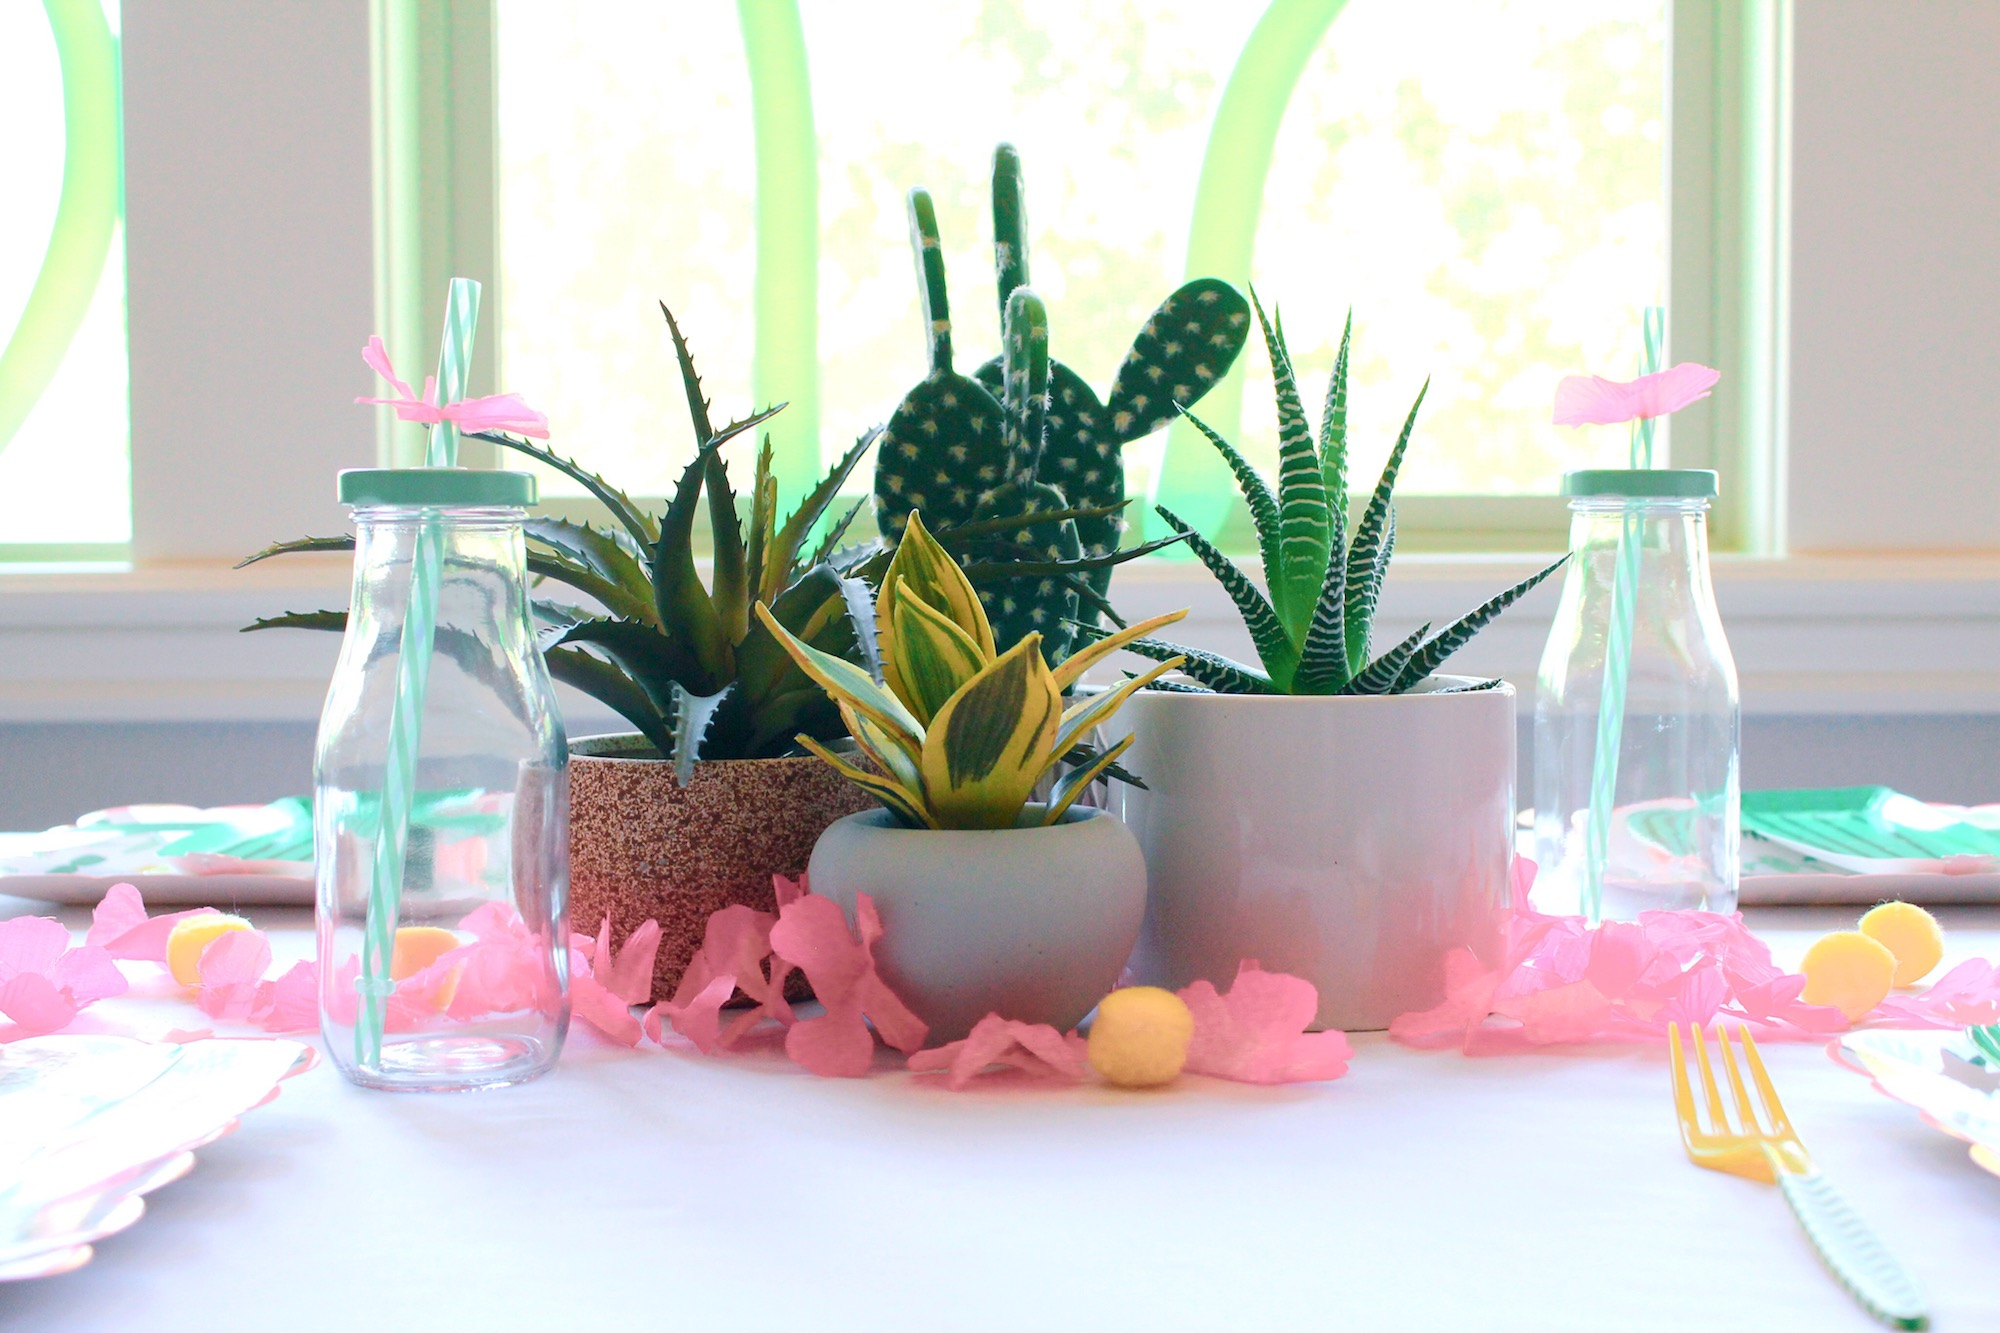 Cactus Party Table Setting Centerpiece_Design Organize Party.JPG